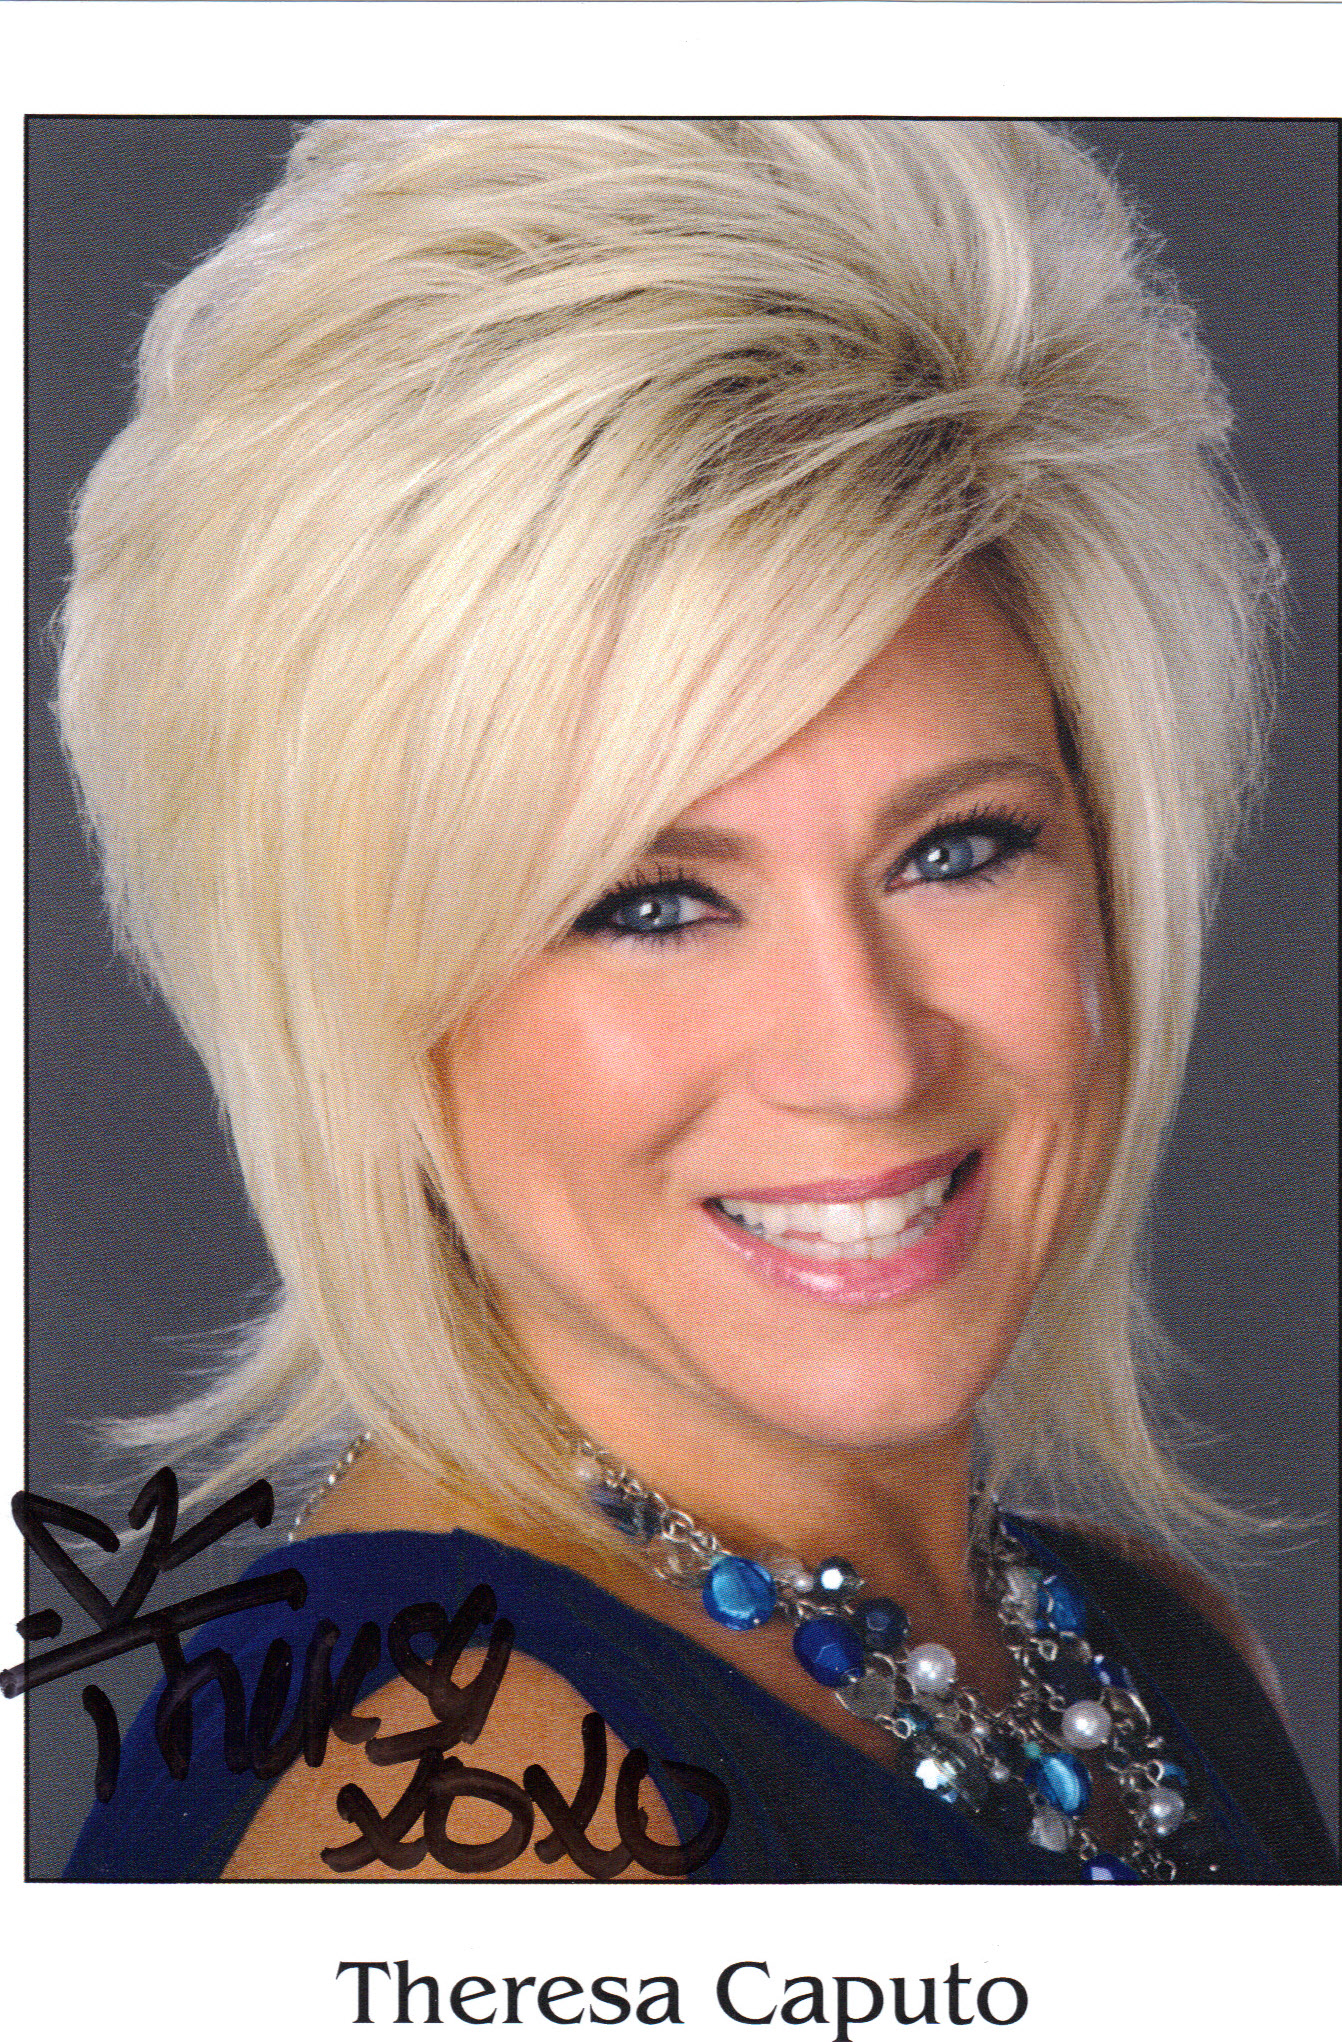 How To Visit The Long Island Medium